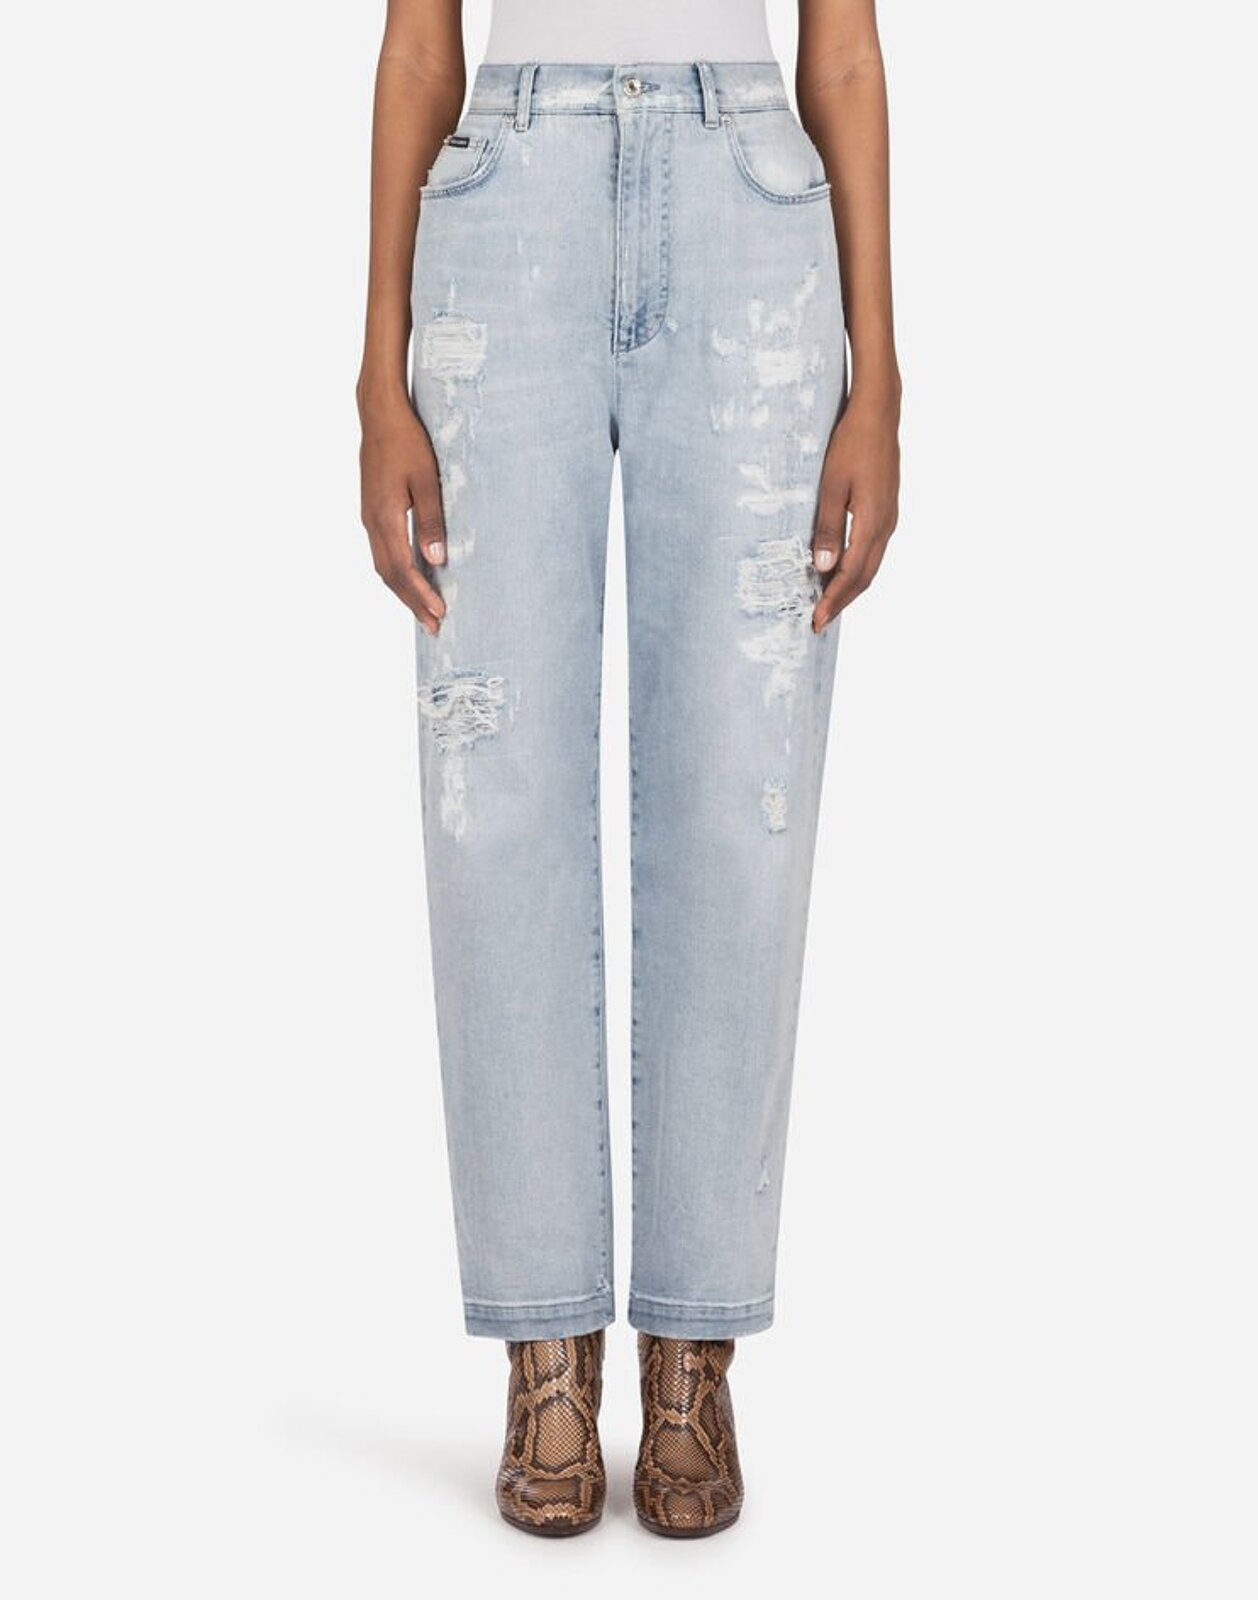 Jeans Amber In Denim Light Blue Con Rotture - Dolce & Gabbana